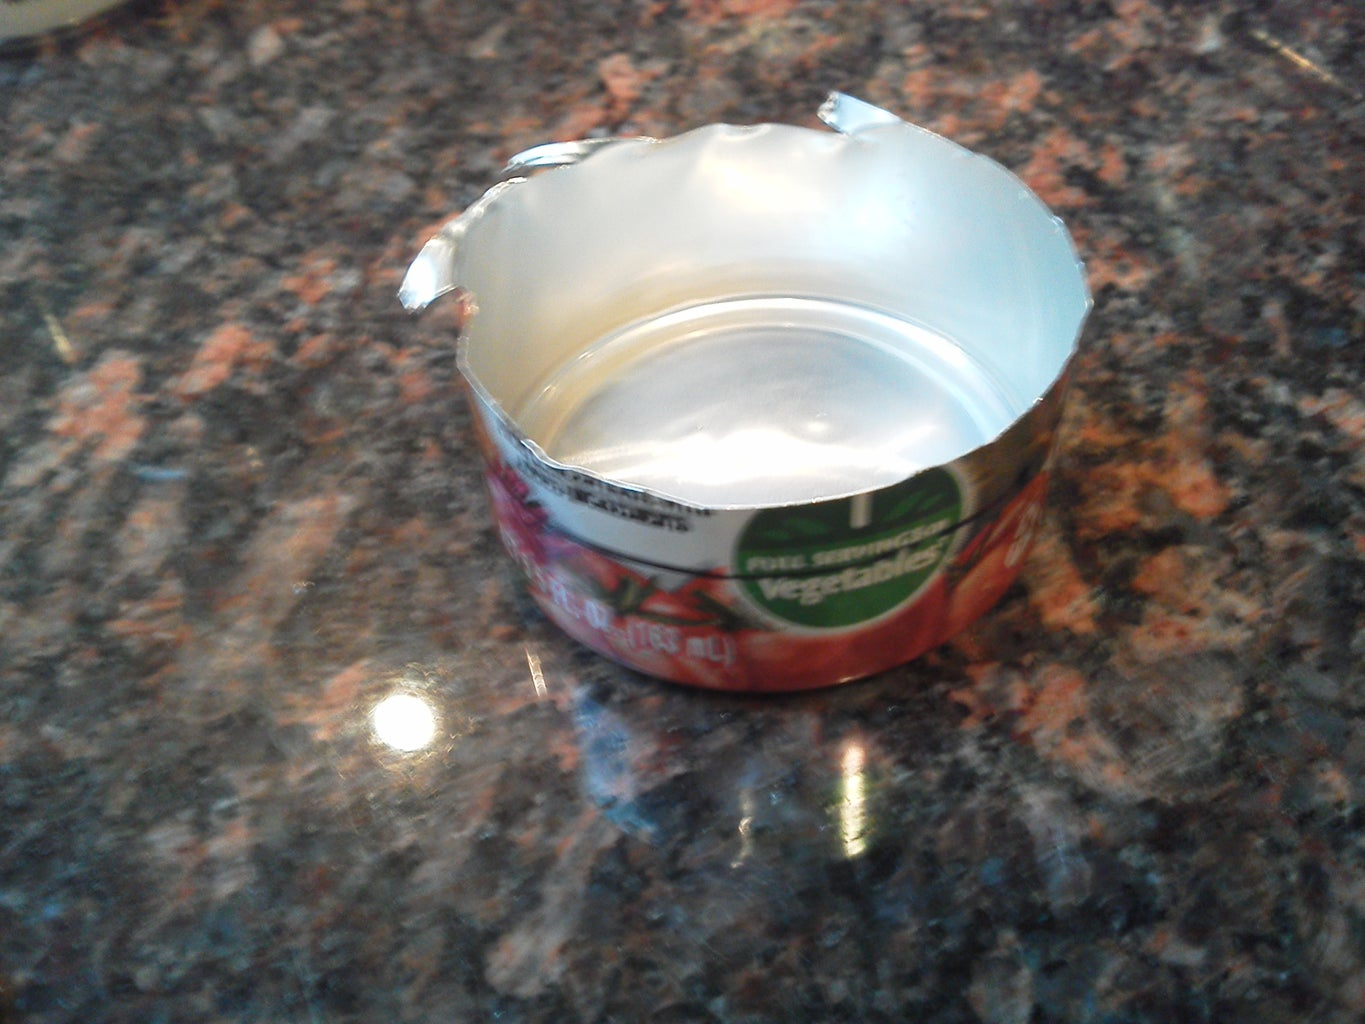 Cut the Can